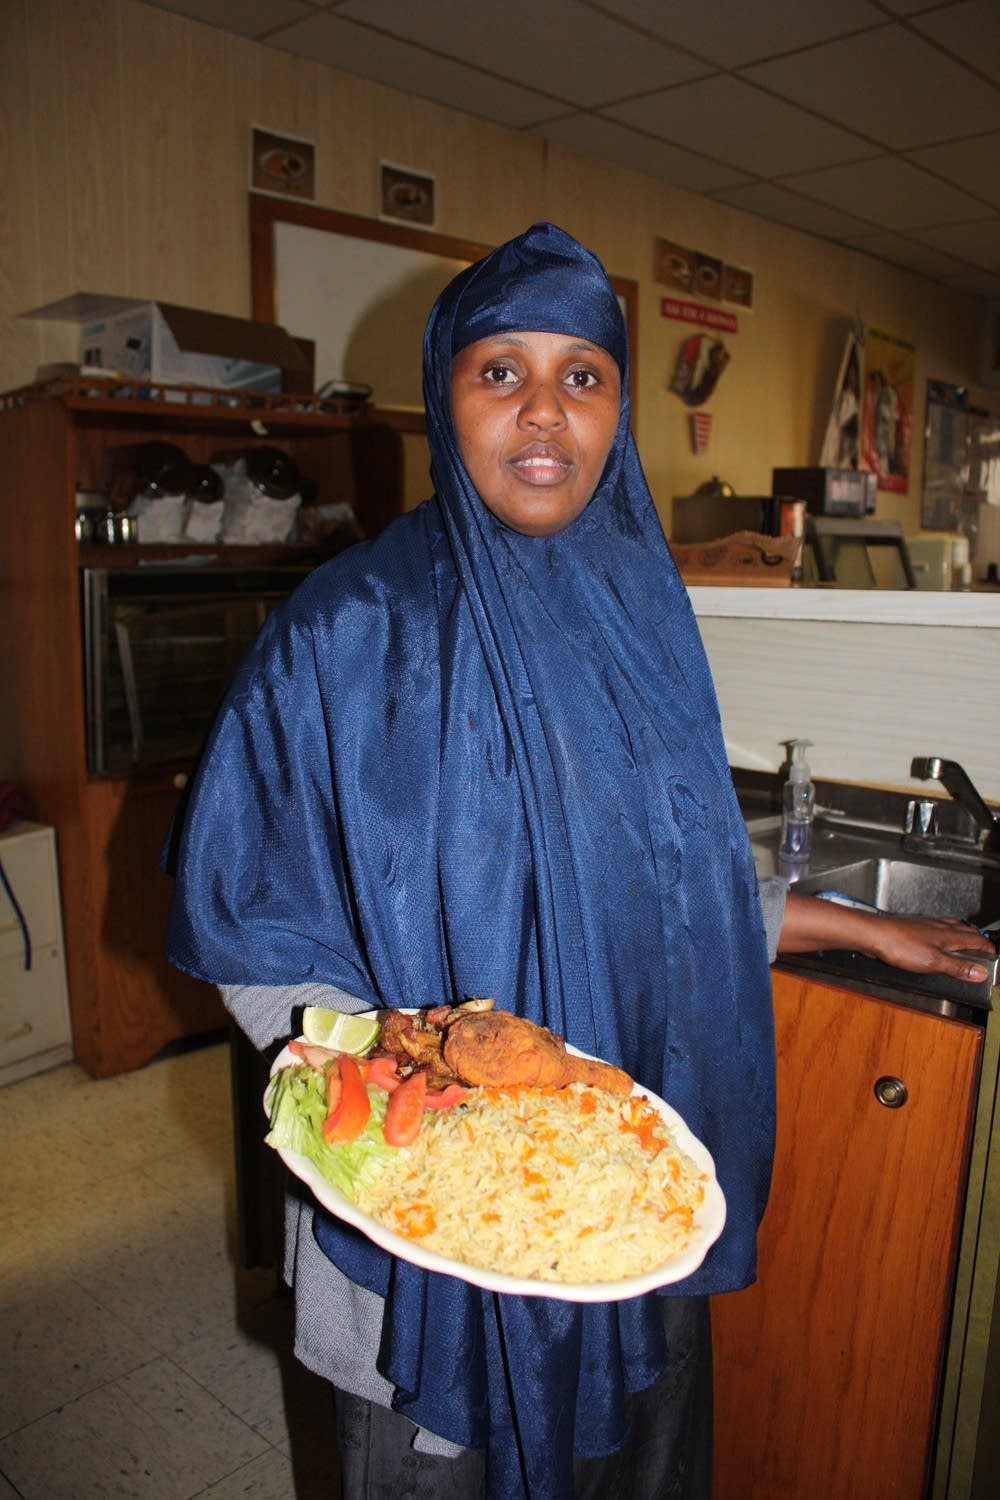 Sahro Farah runs Bihi's restaurant with Mohemed